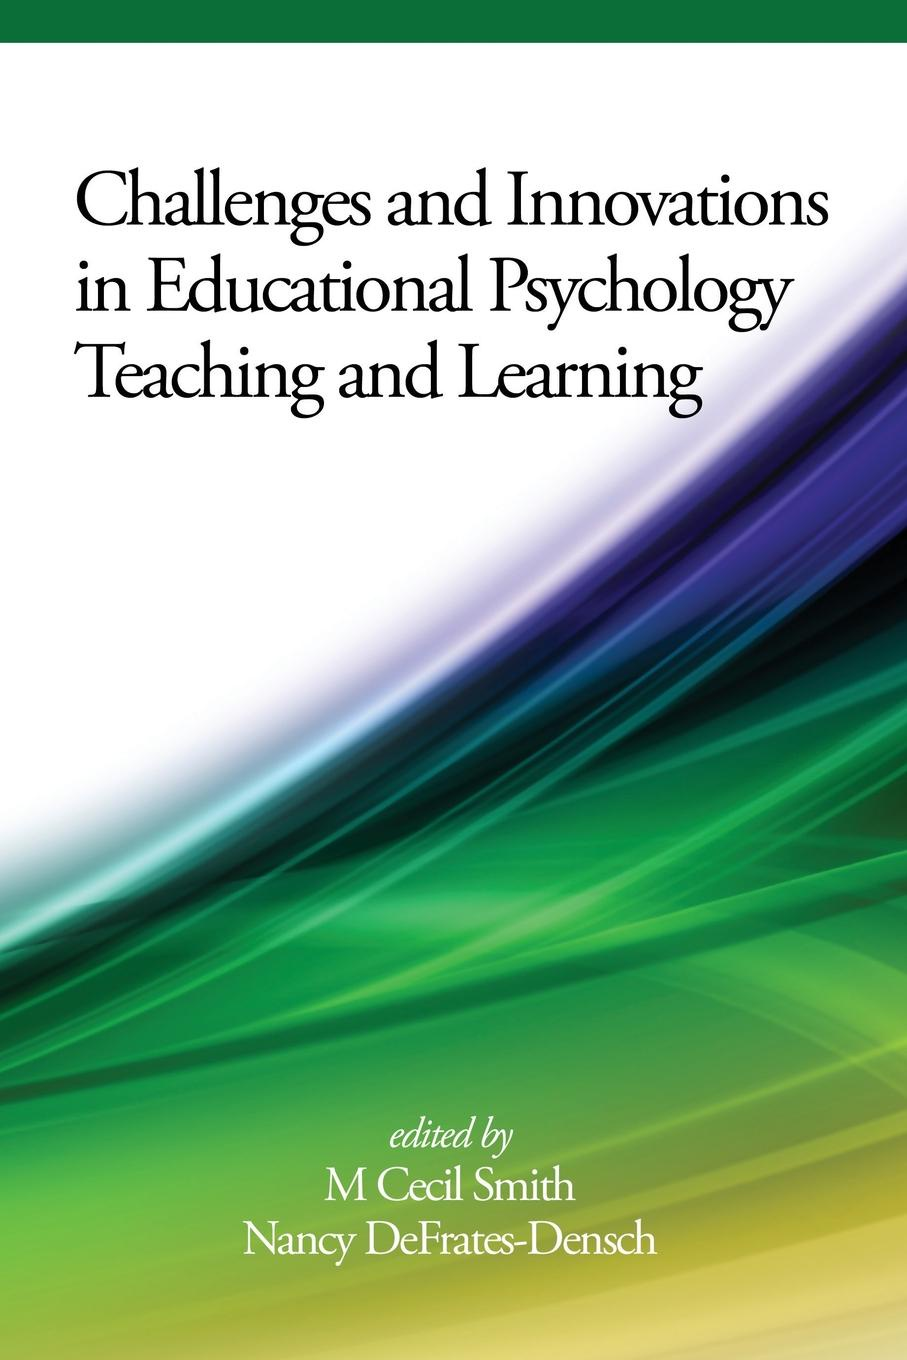 Challenges and Innovations in Educational Psychology Teaching and Learning tom billington critical educational psychology